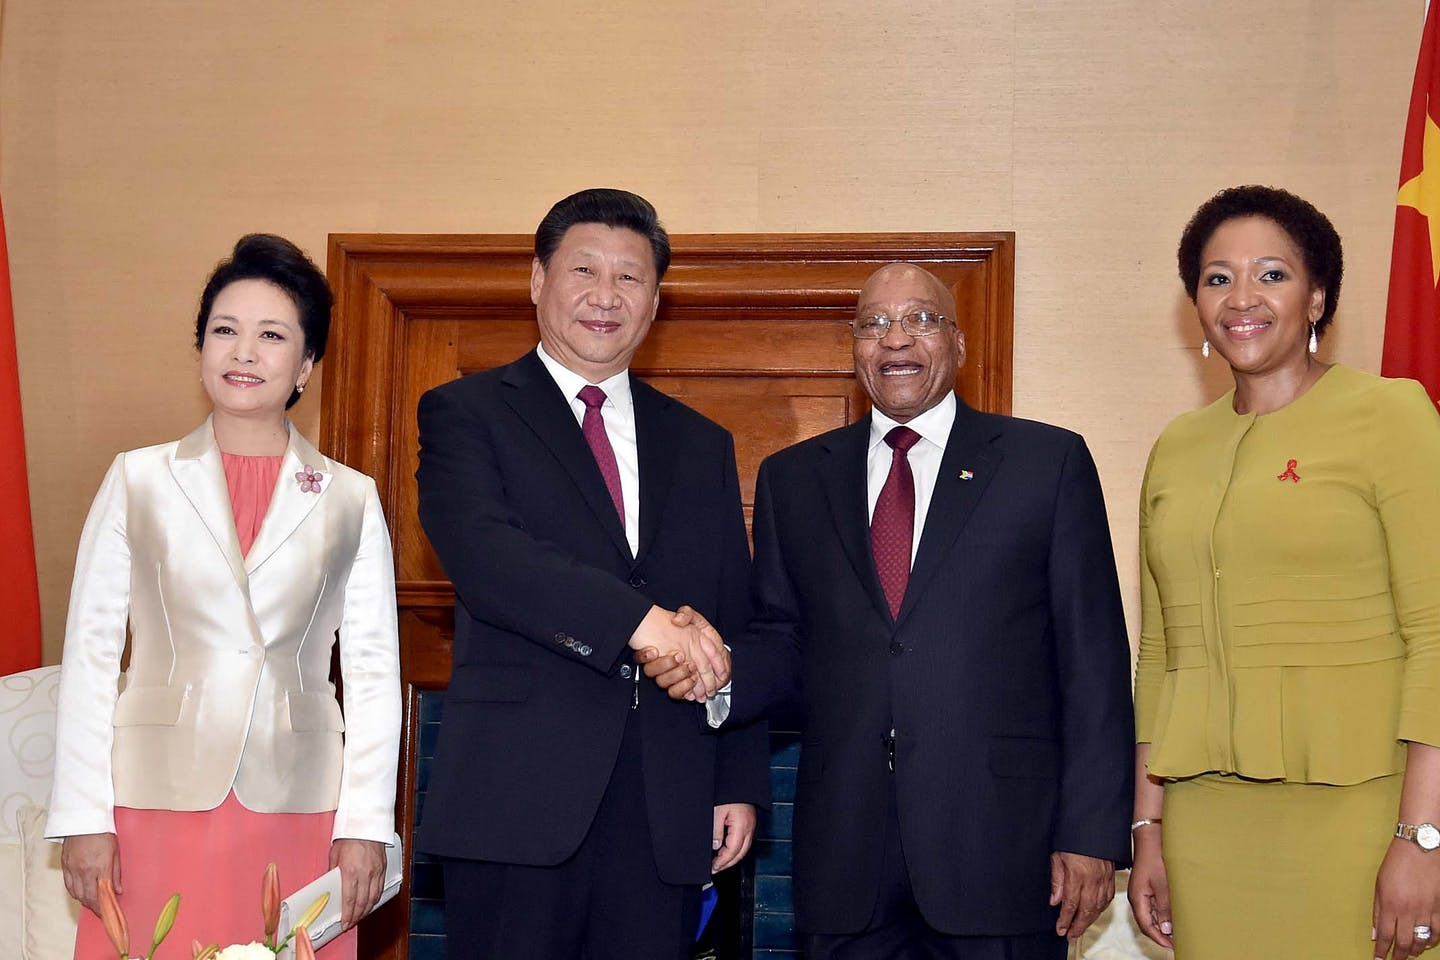 Xi Jinping and Jacob Zuma